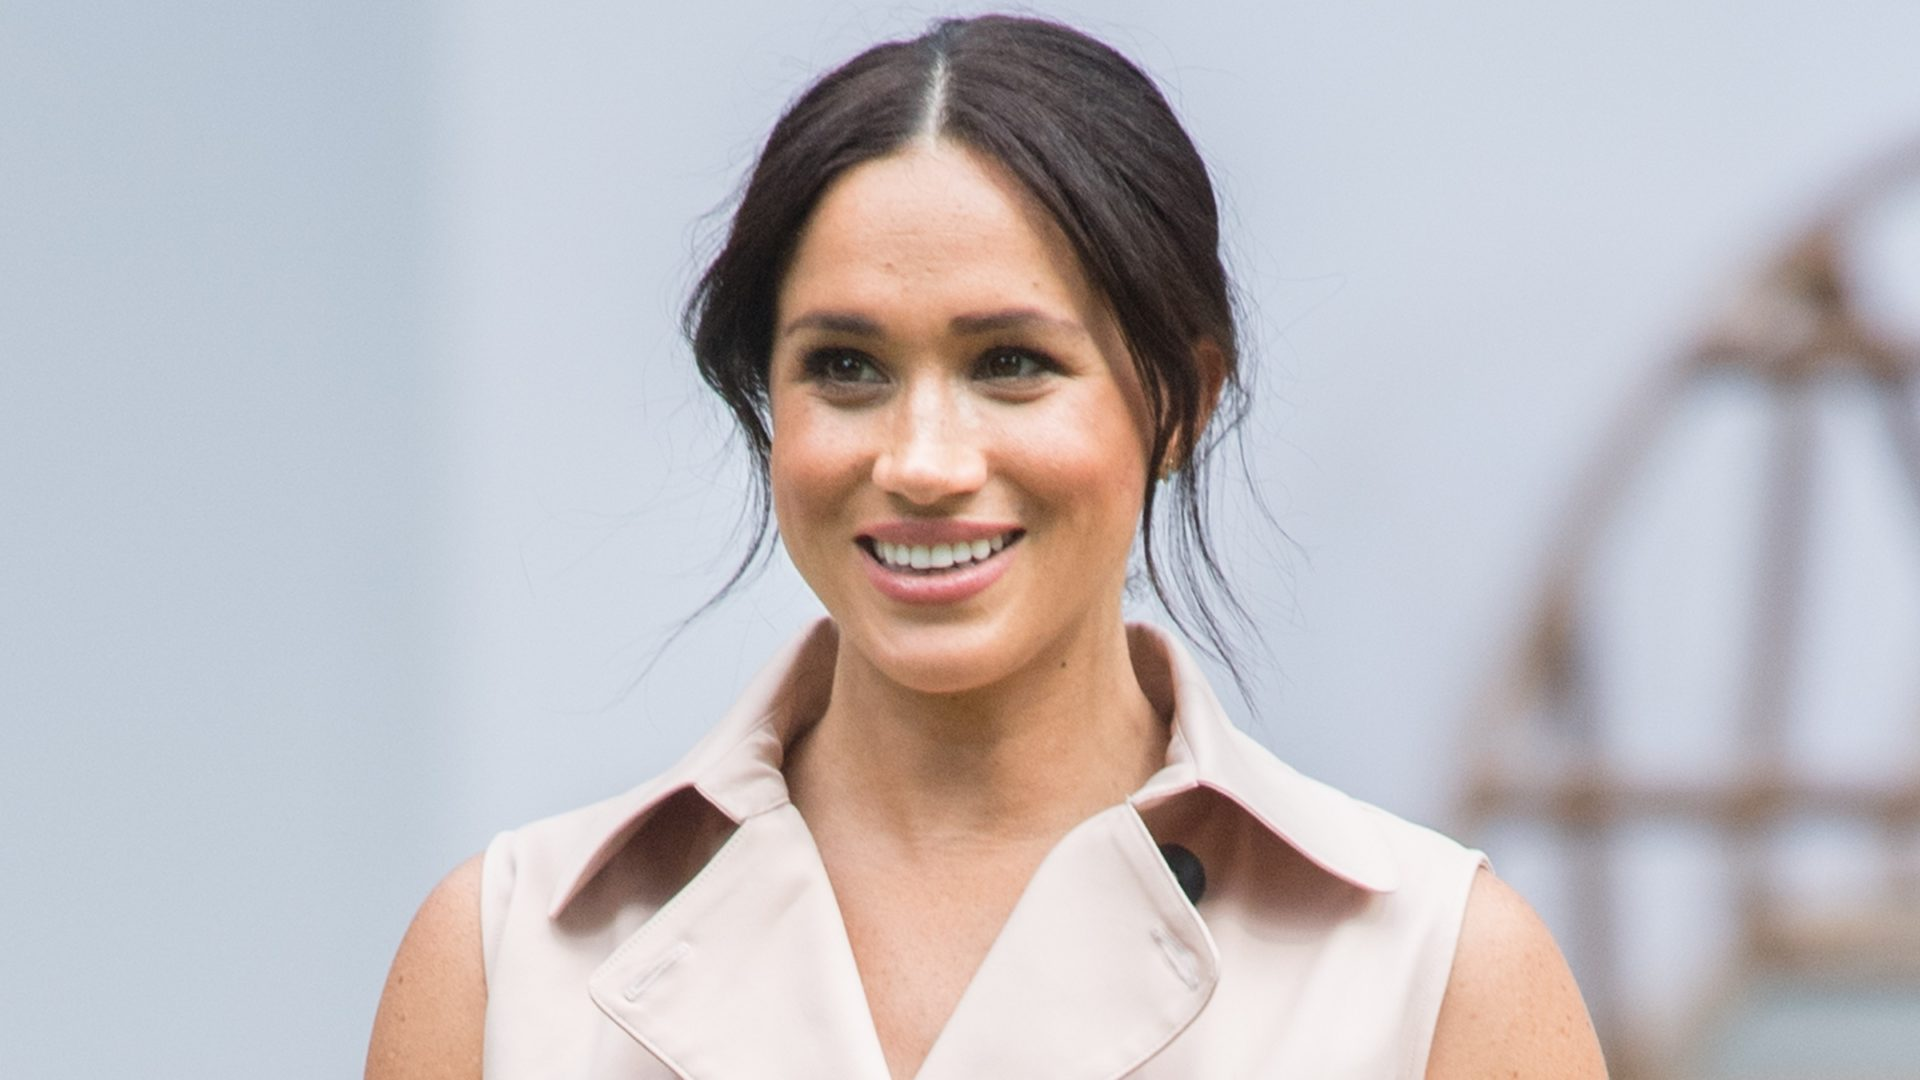 Meghan Markle Wore This Affordable Find On The Royal Tour